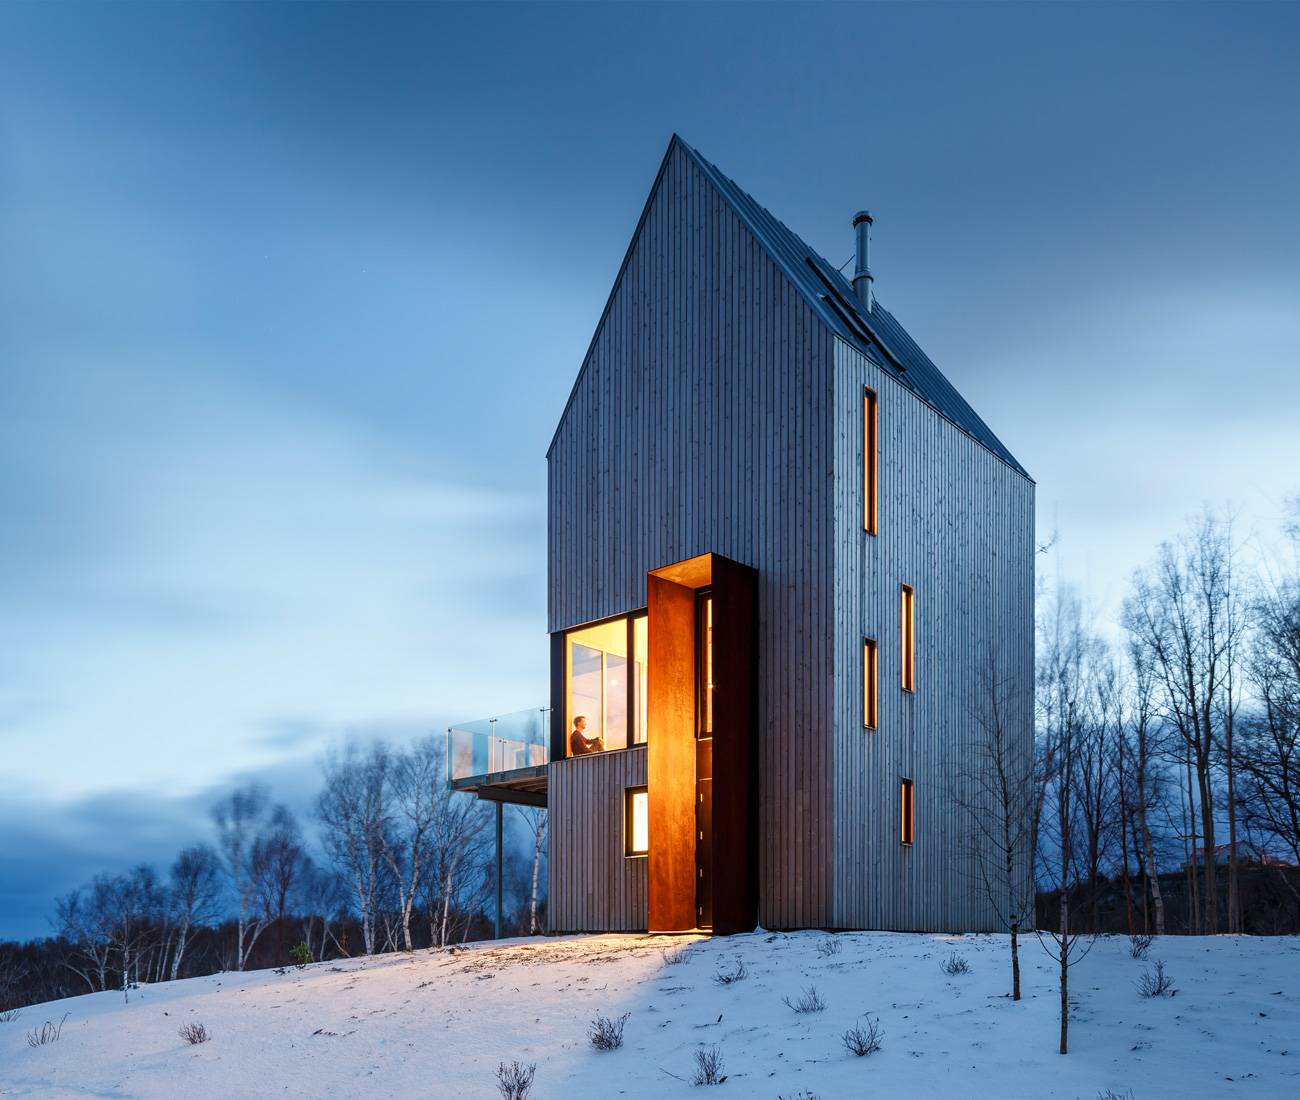 Gandhi's take on the gabled farm-house, the Rabbit Snare Gorge home in Cape Breton, has a two-tonne Corten hoop serving as a windbreak around the entrance.